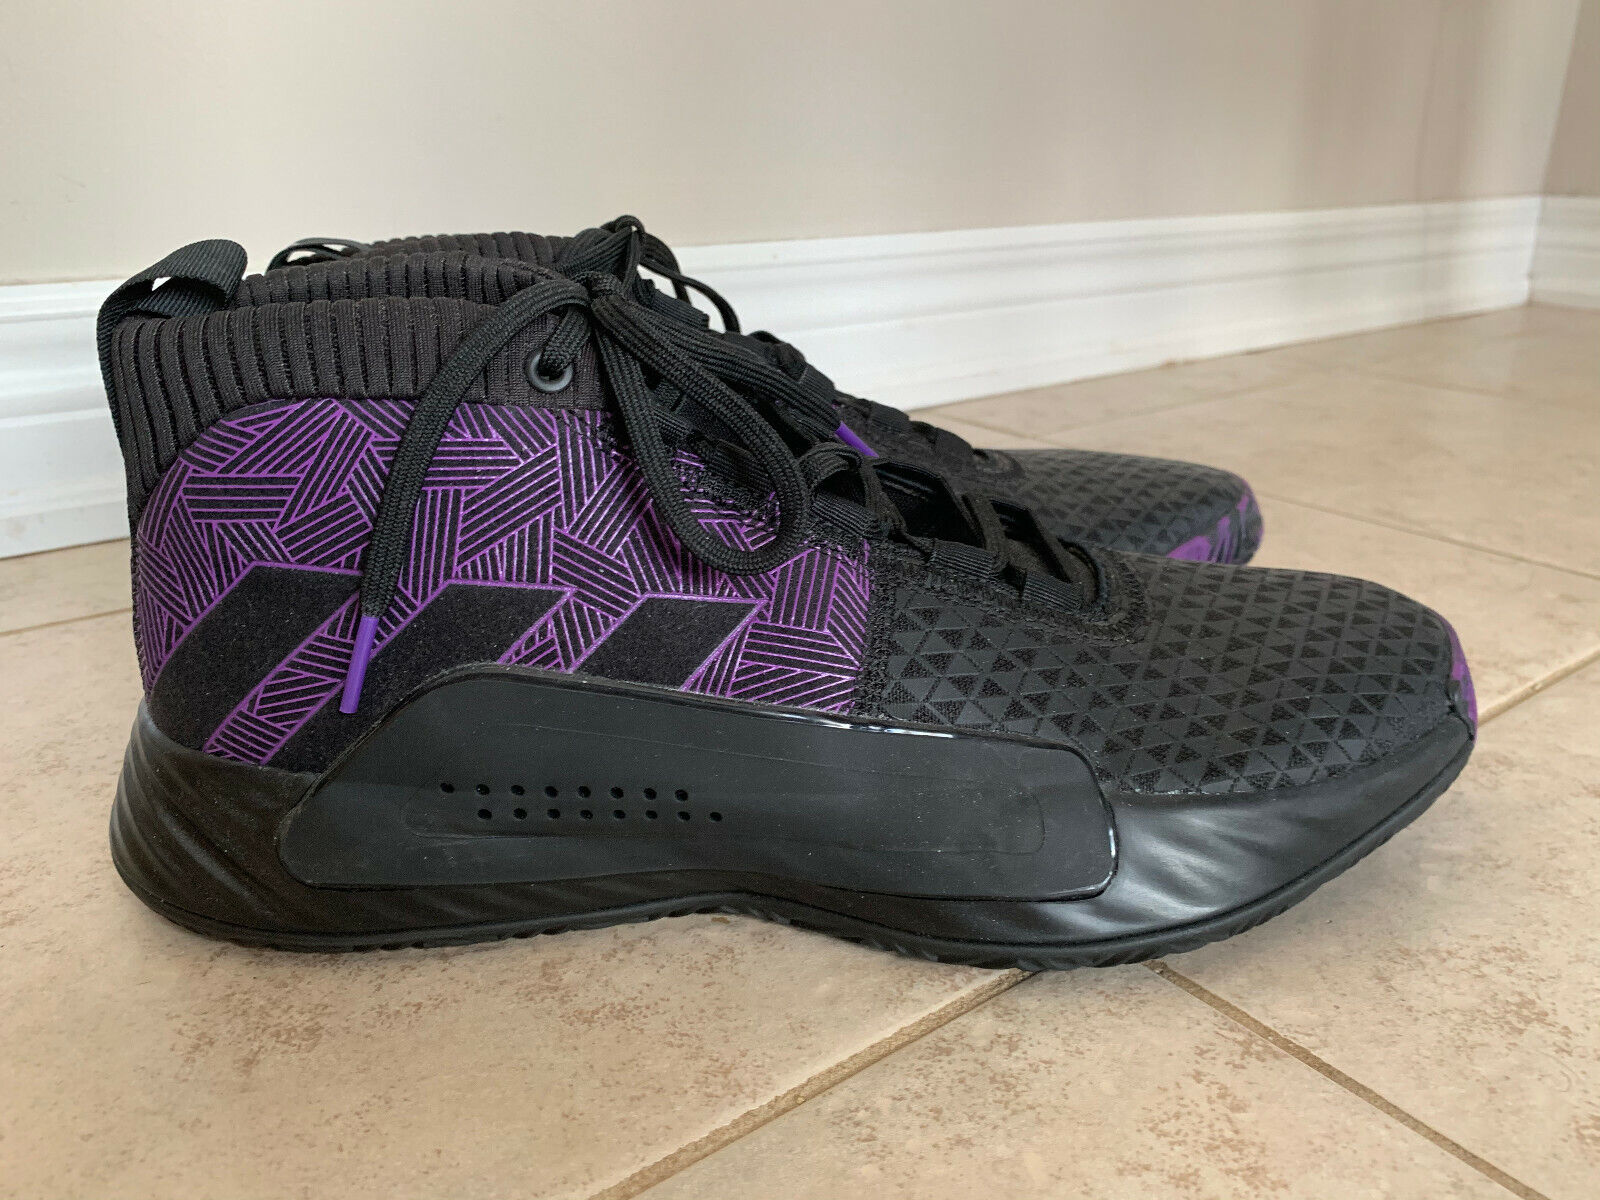 US size 11 adidas Marvel Black Panther Dame 5 Basketball BRAND NEW NEVER WORN